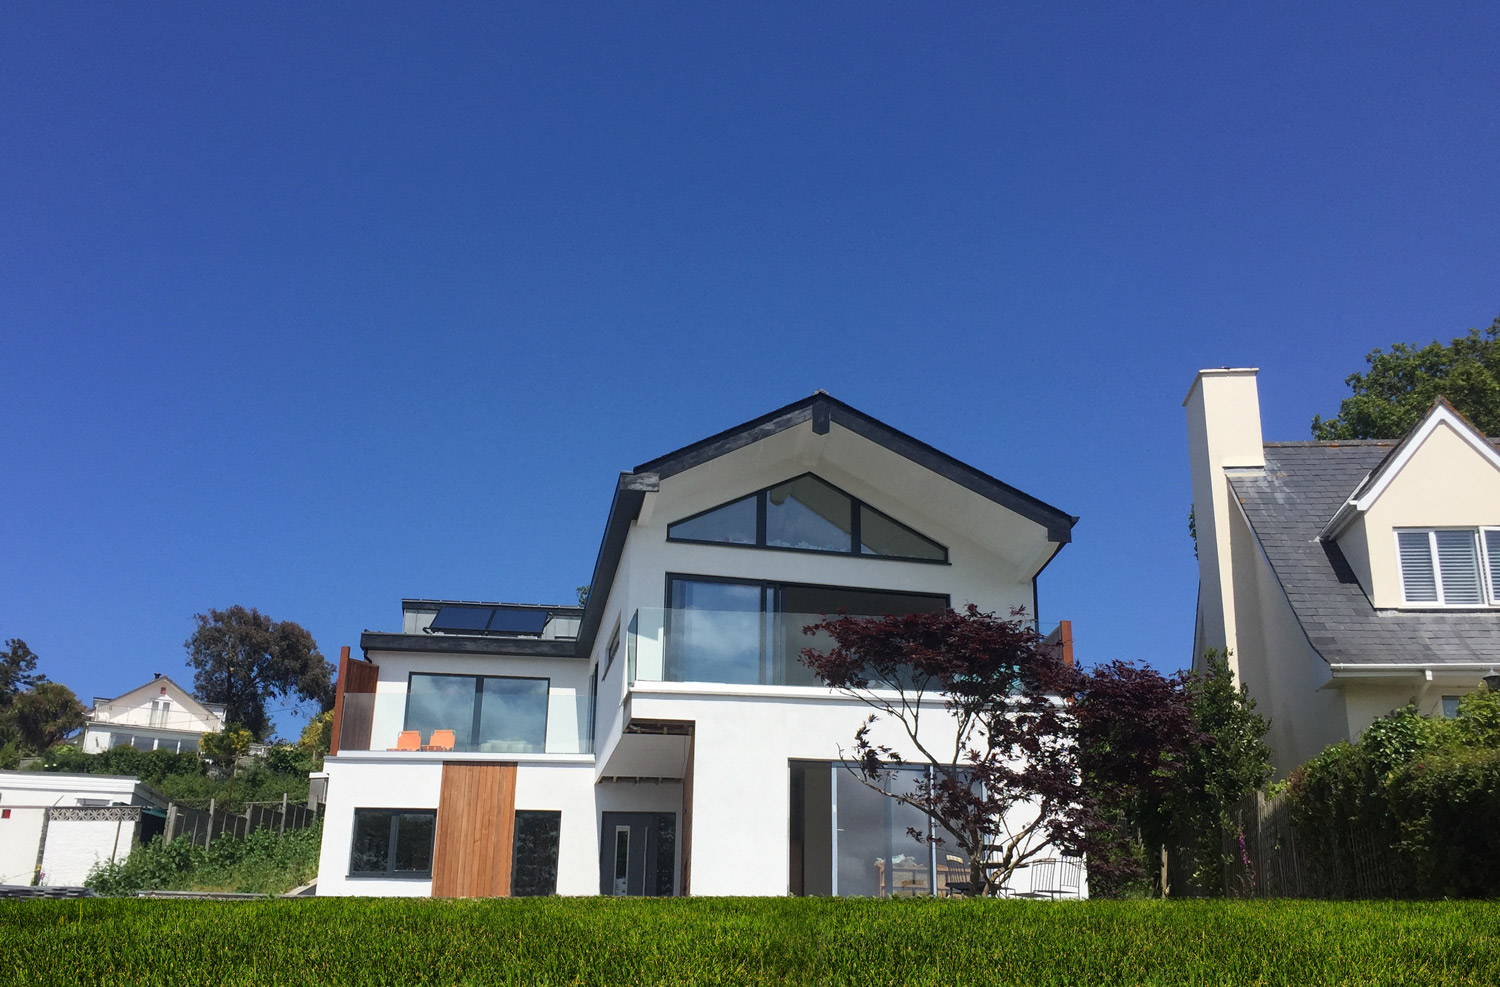 Cornwall Architect designed house - frontage